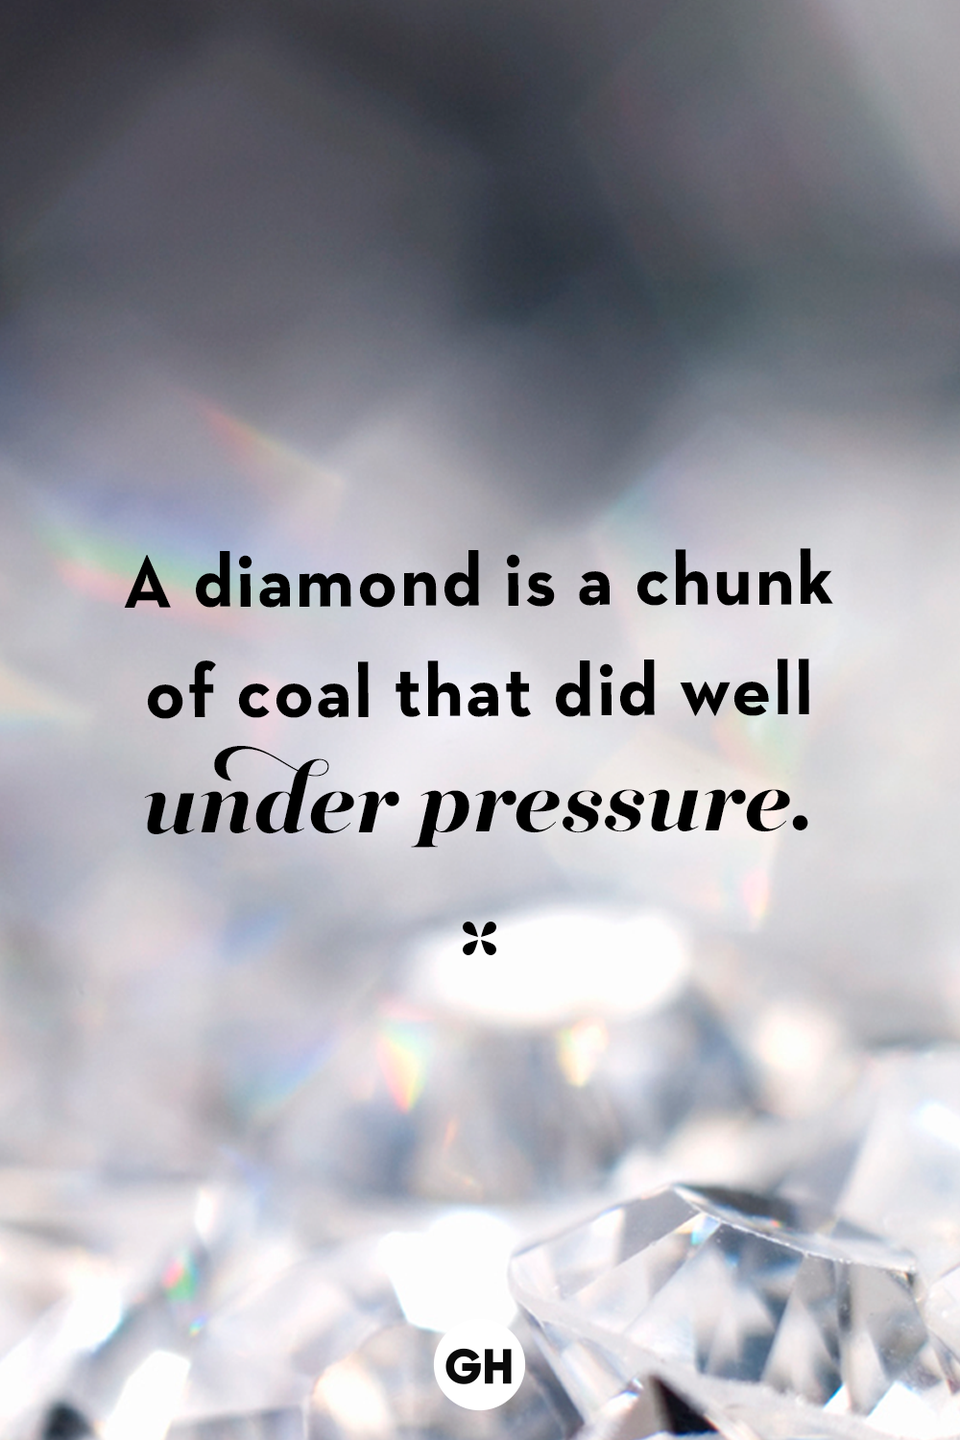 <p>A diamond is a chunk of coal that did well under pressure.</p>